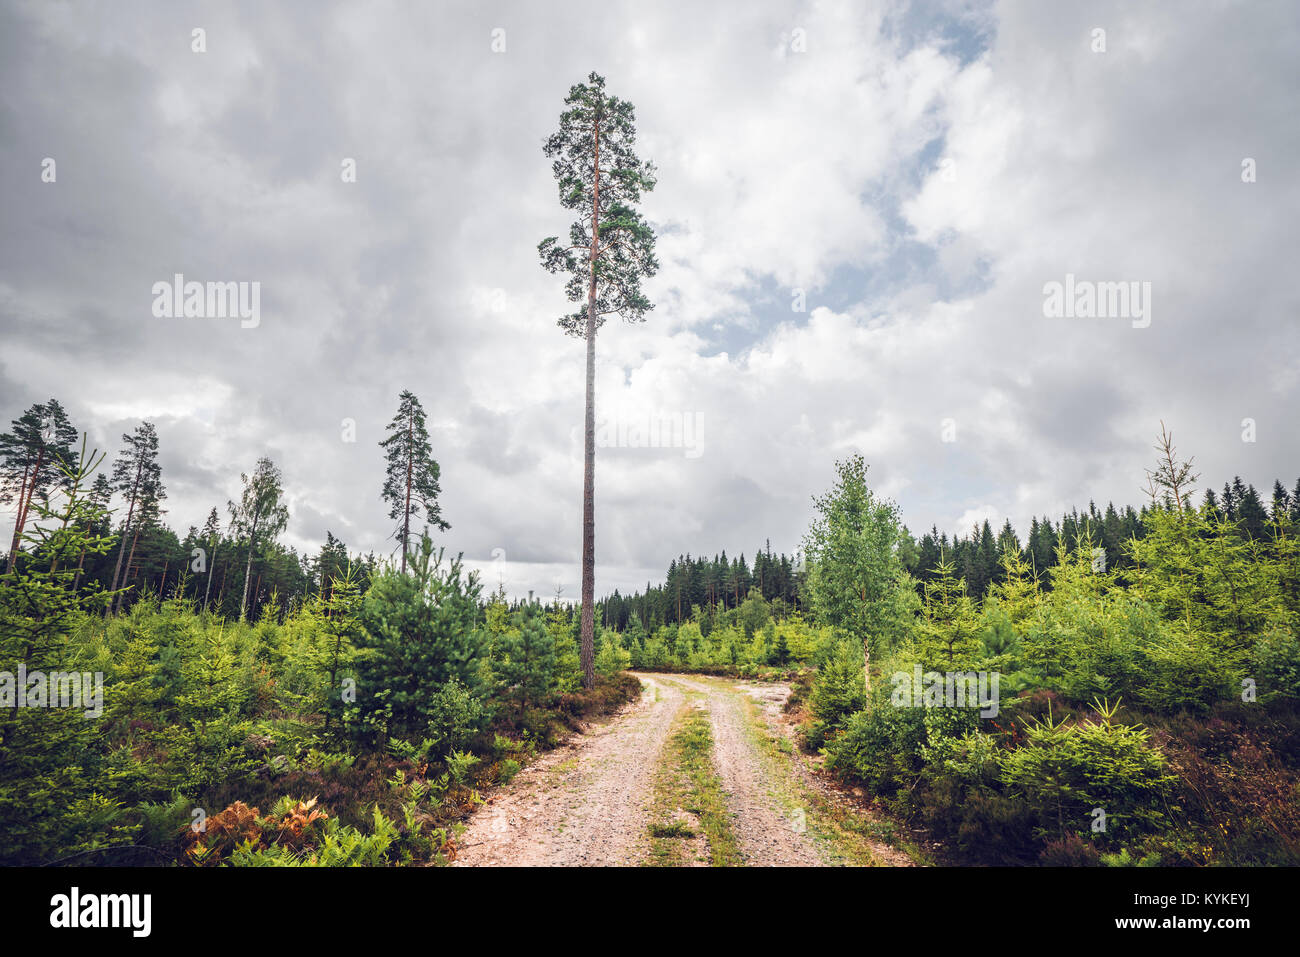 Nature trail in a Scandinavian forest with tall pine trees in the summer - Stock Image